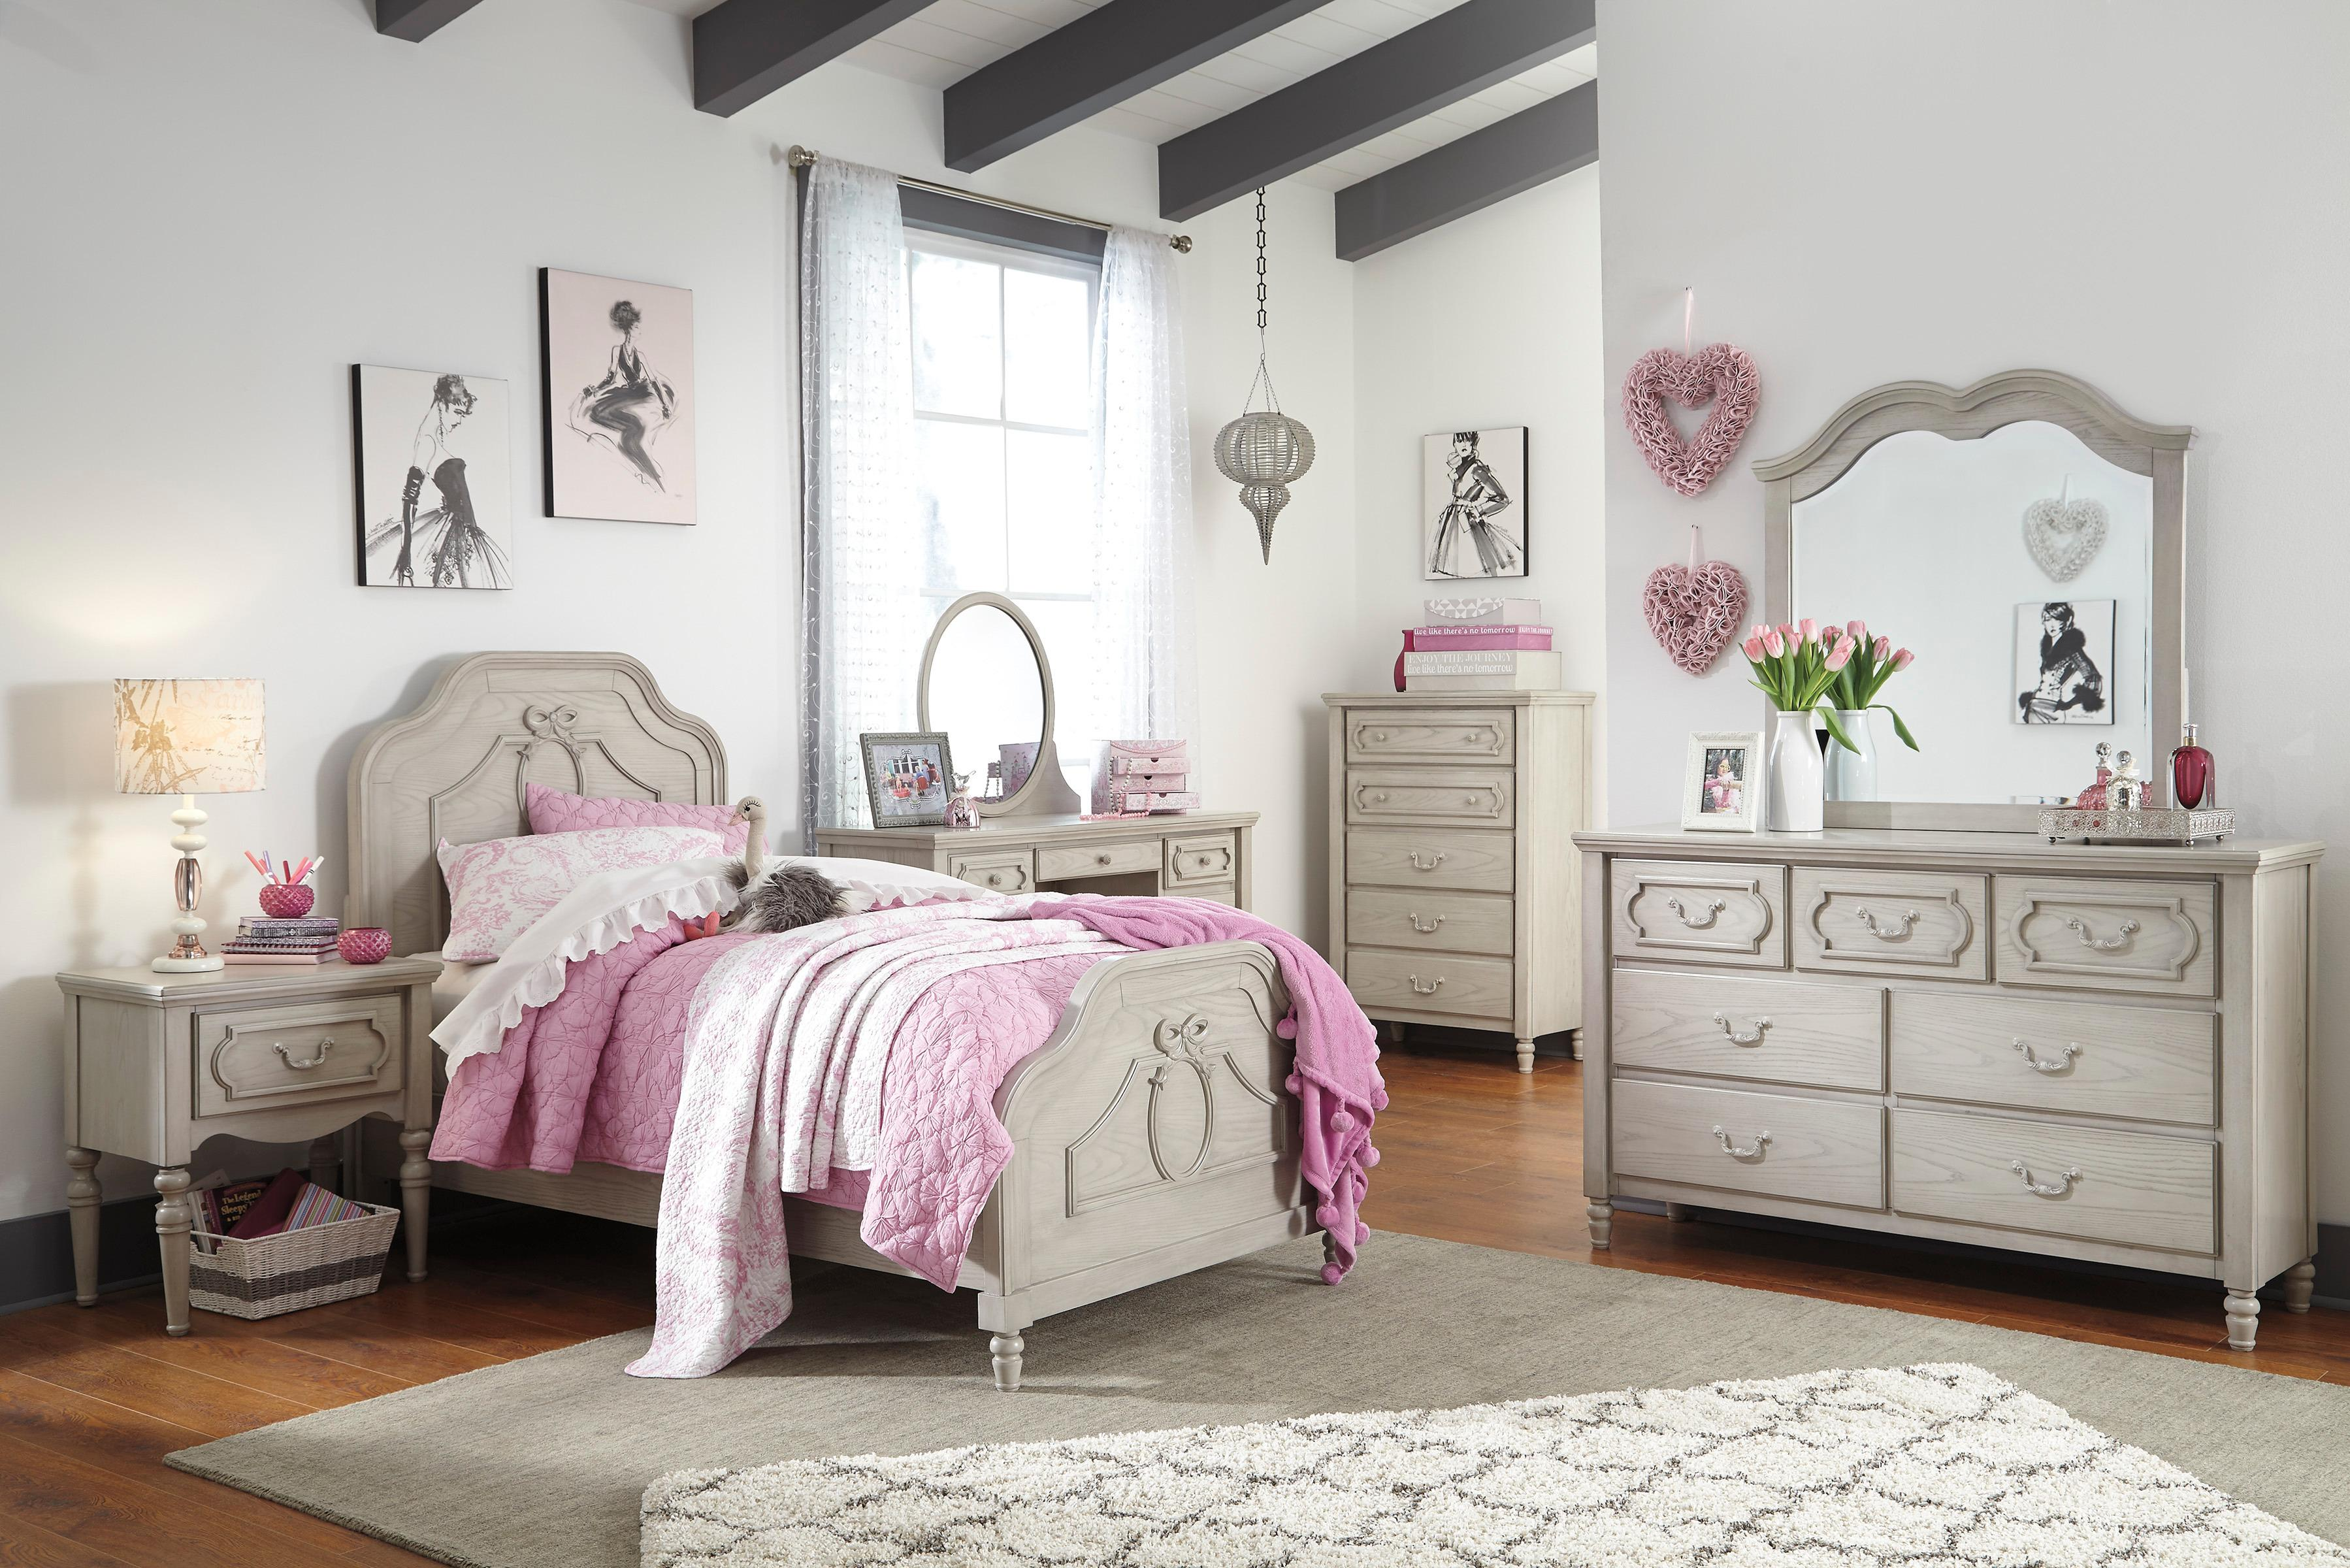 Abrielle twin panel bed's French country inspired design is a dream come true for your petite mademoiselle. Raised cameo details add a sweet, feminine touch. Ethereal finish complements any color scheme, from dusty rose to powder blue and every hue in between. Mattress available, sold separately.